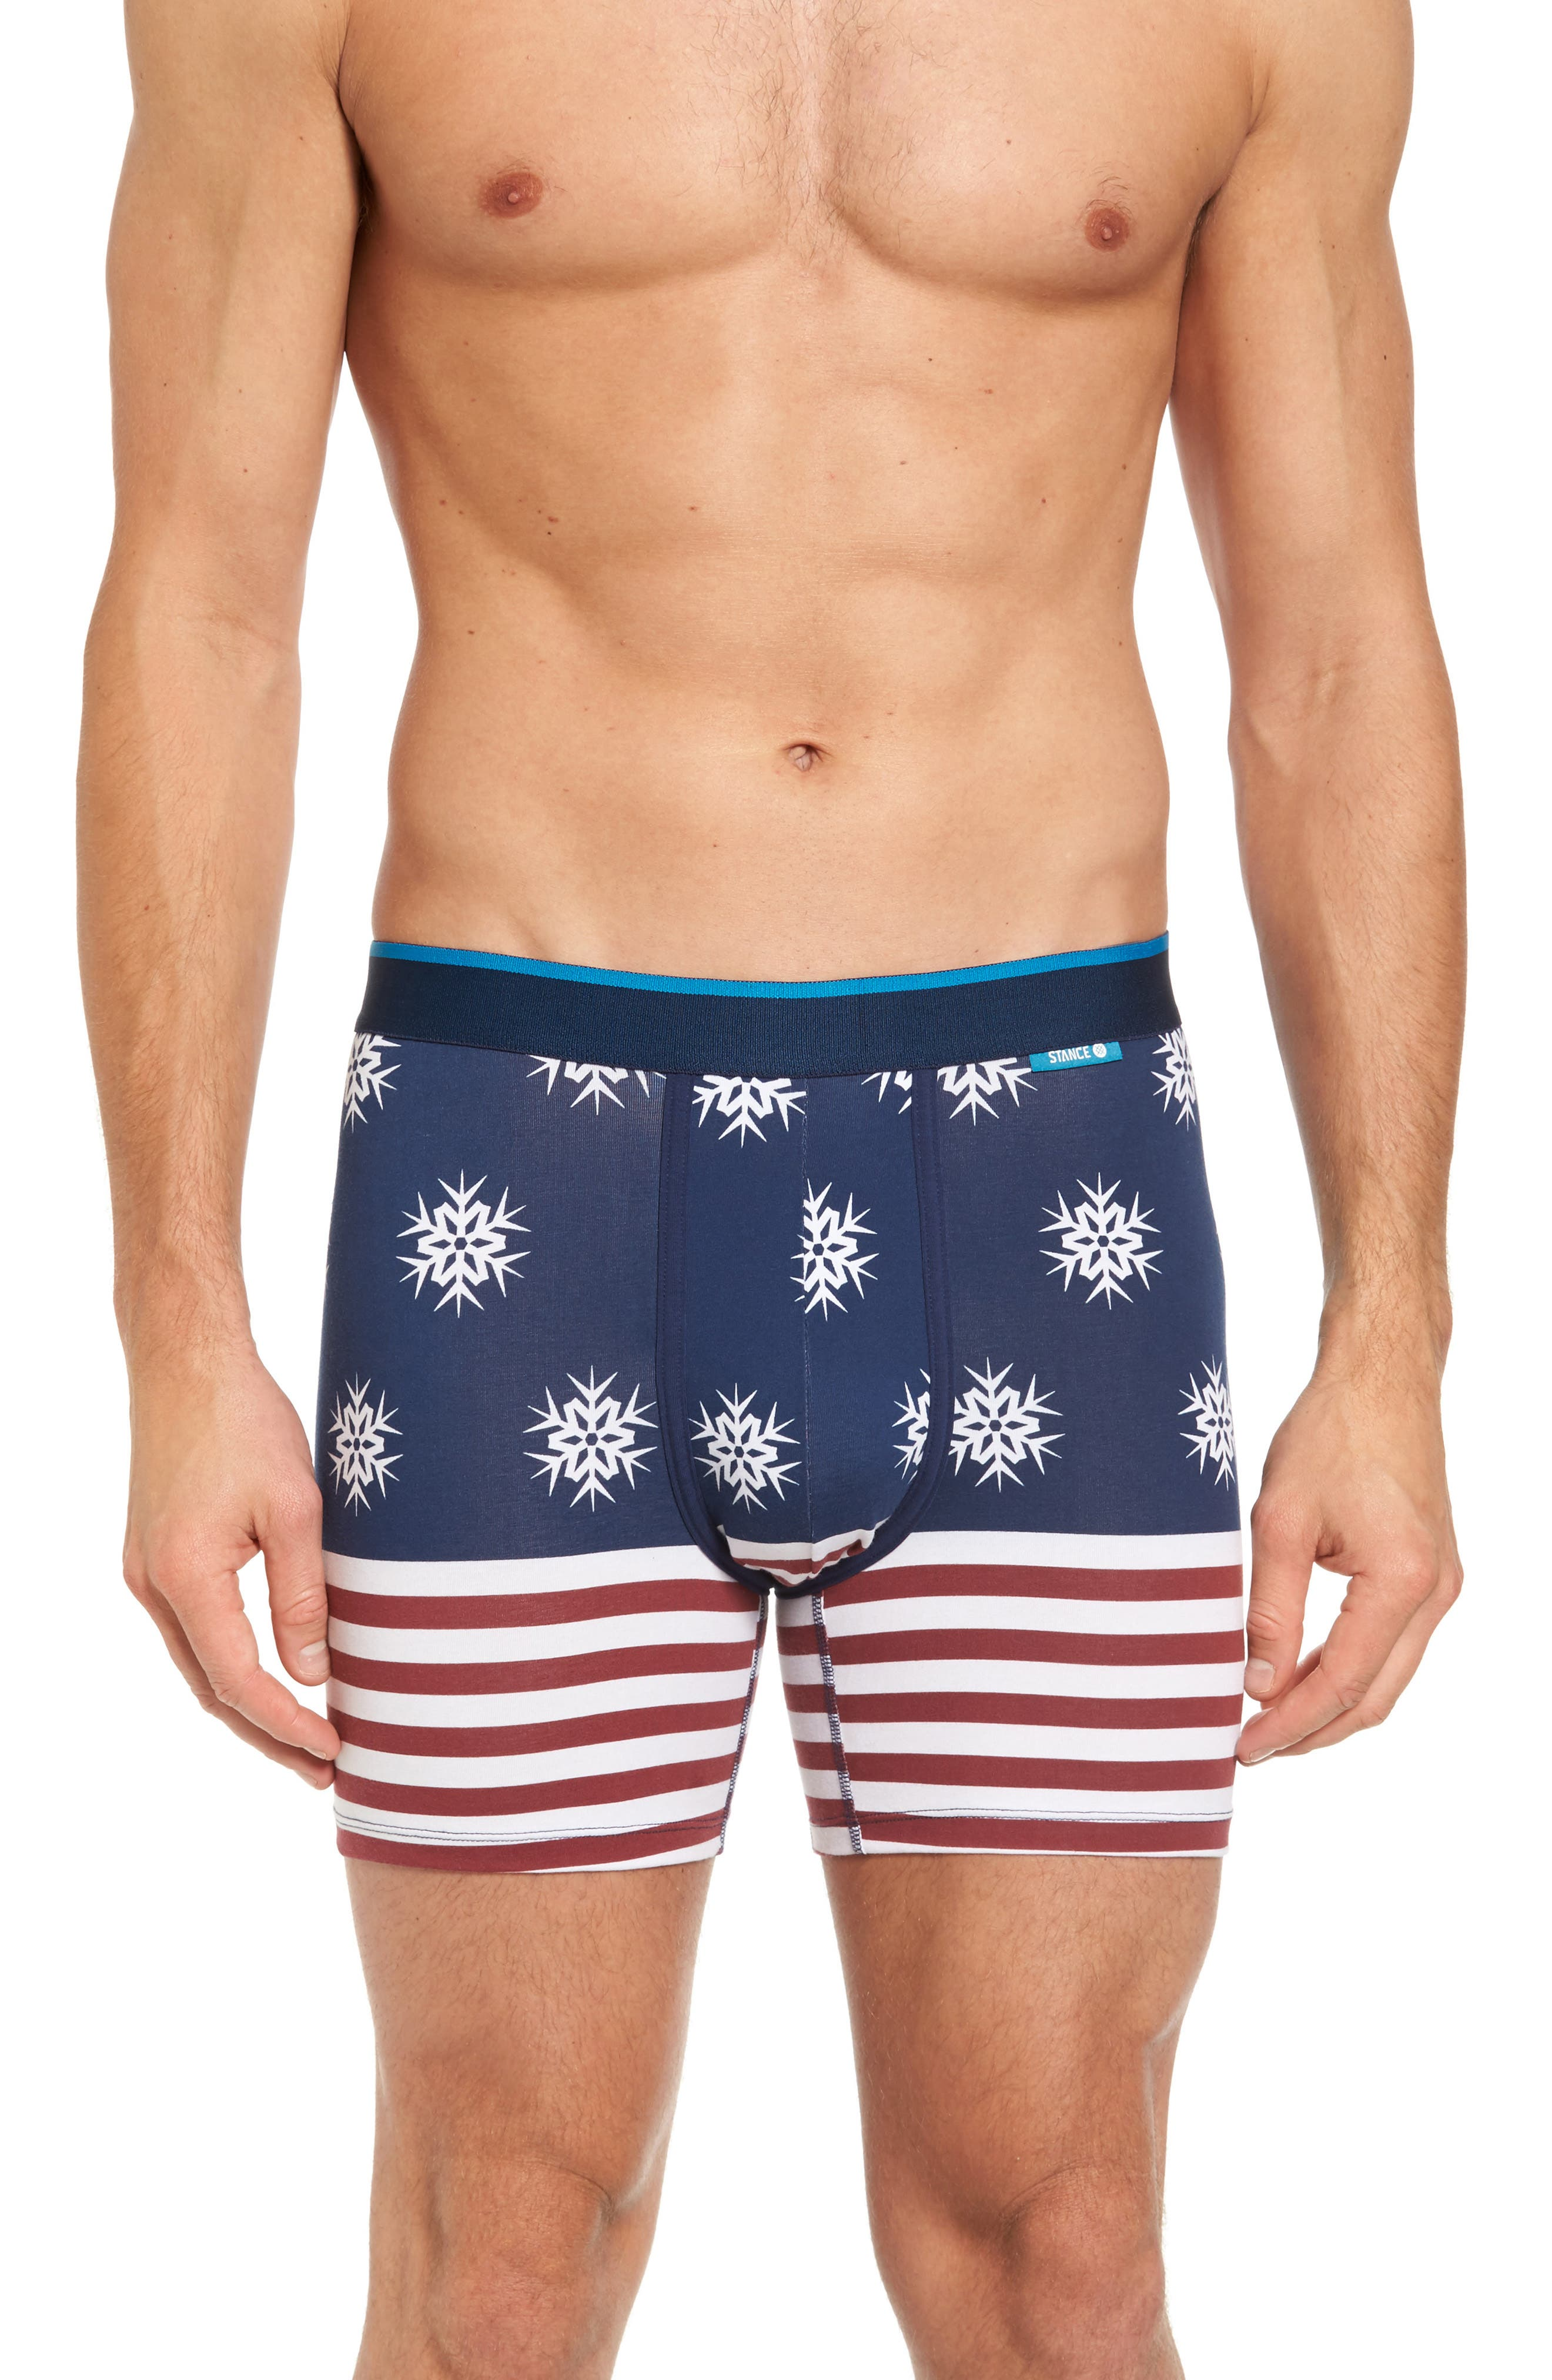 Flake Flag Boxer Briefs,                             Main thumbnail 1, color,                             400